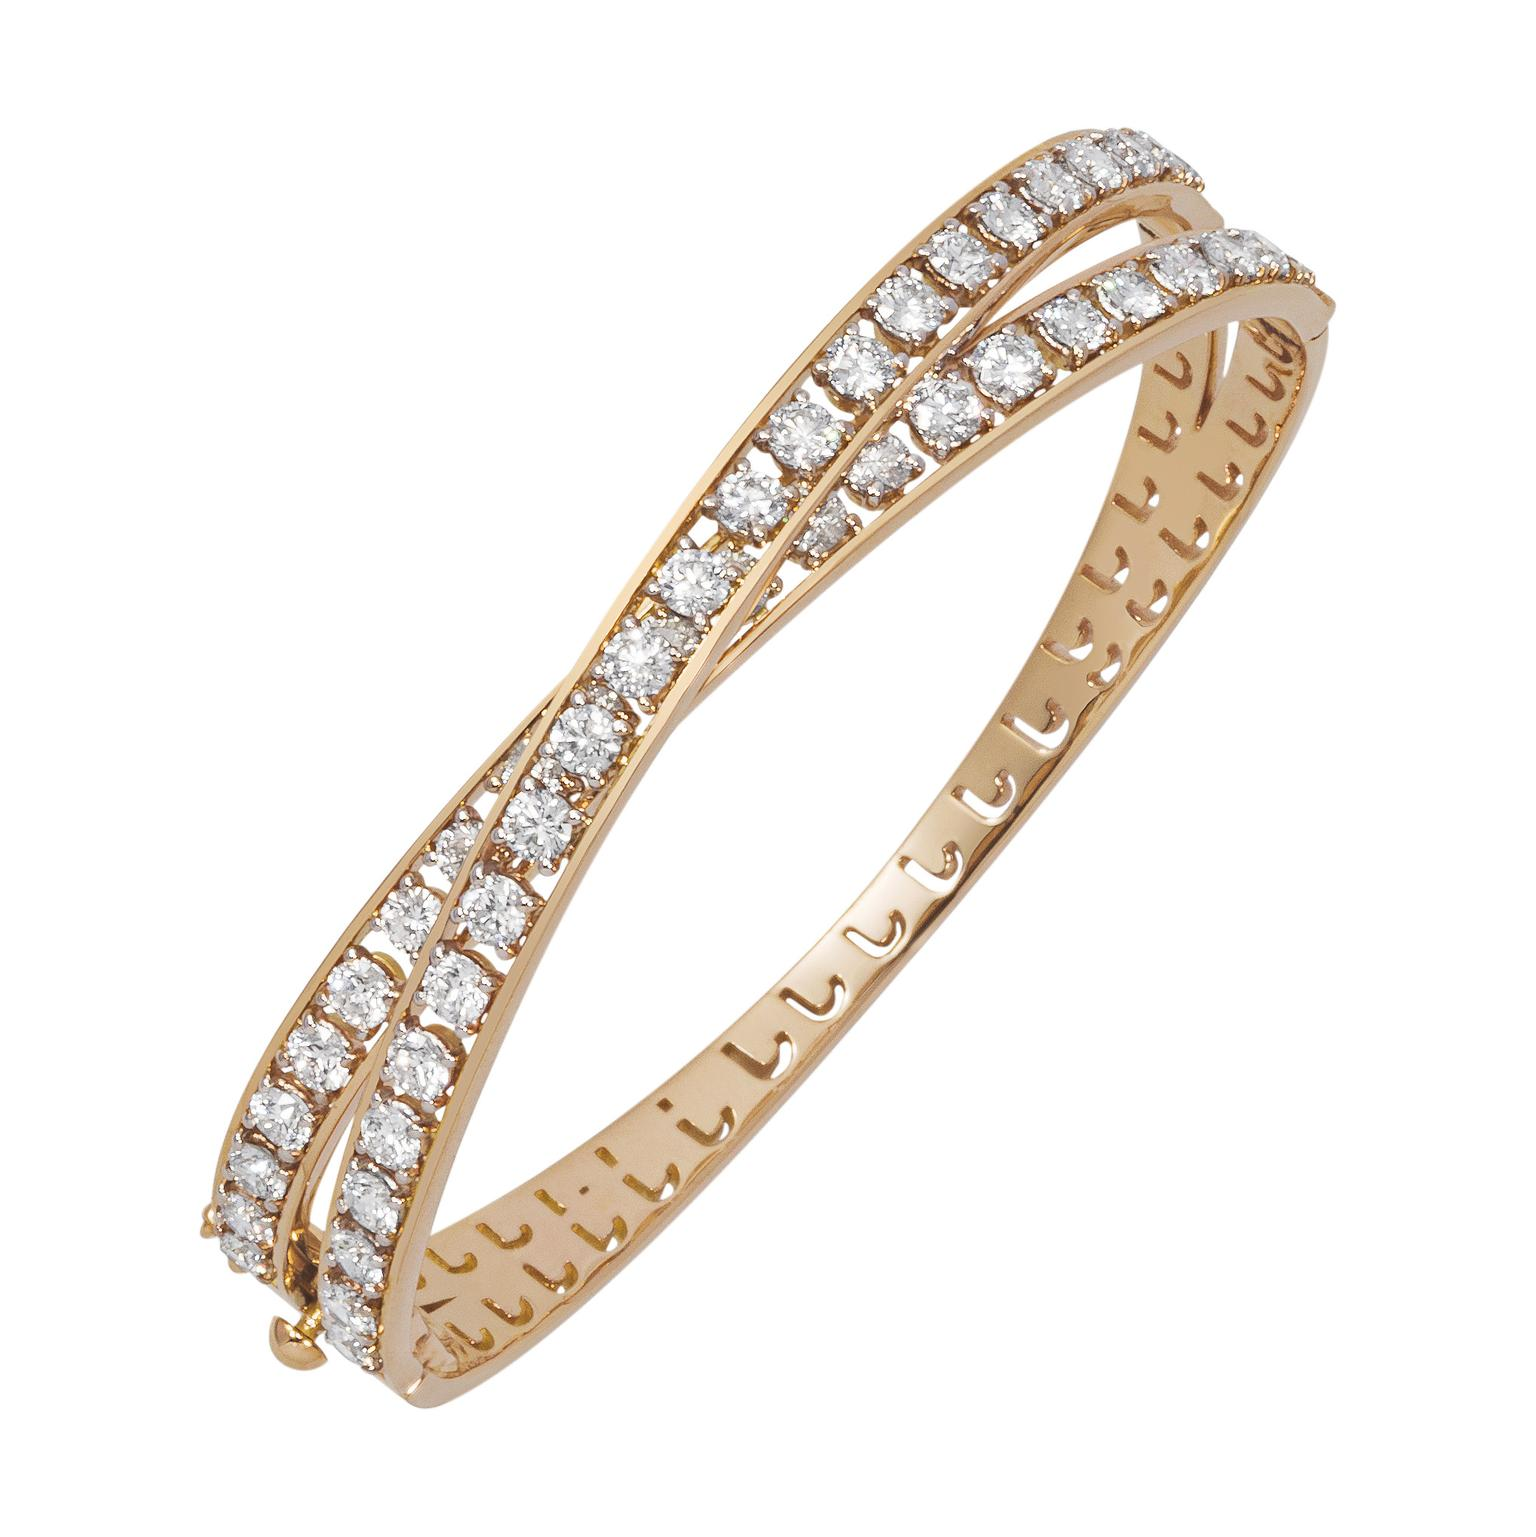 Nour By Jahan, bangle from the Kiss Collection